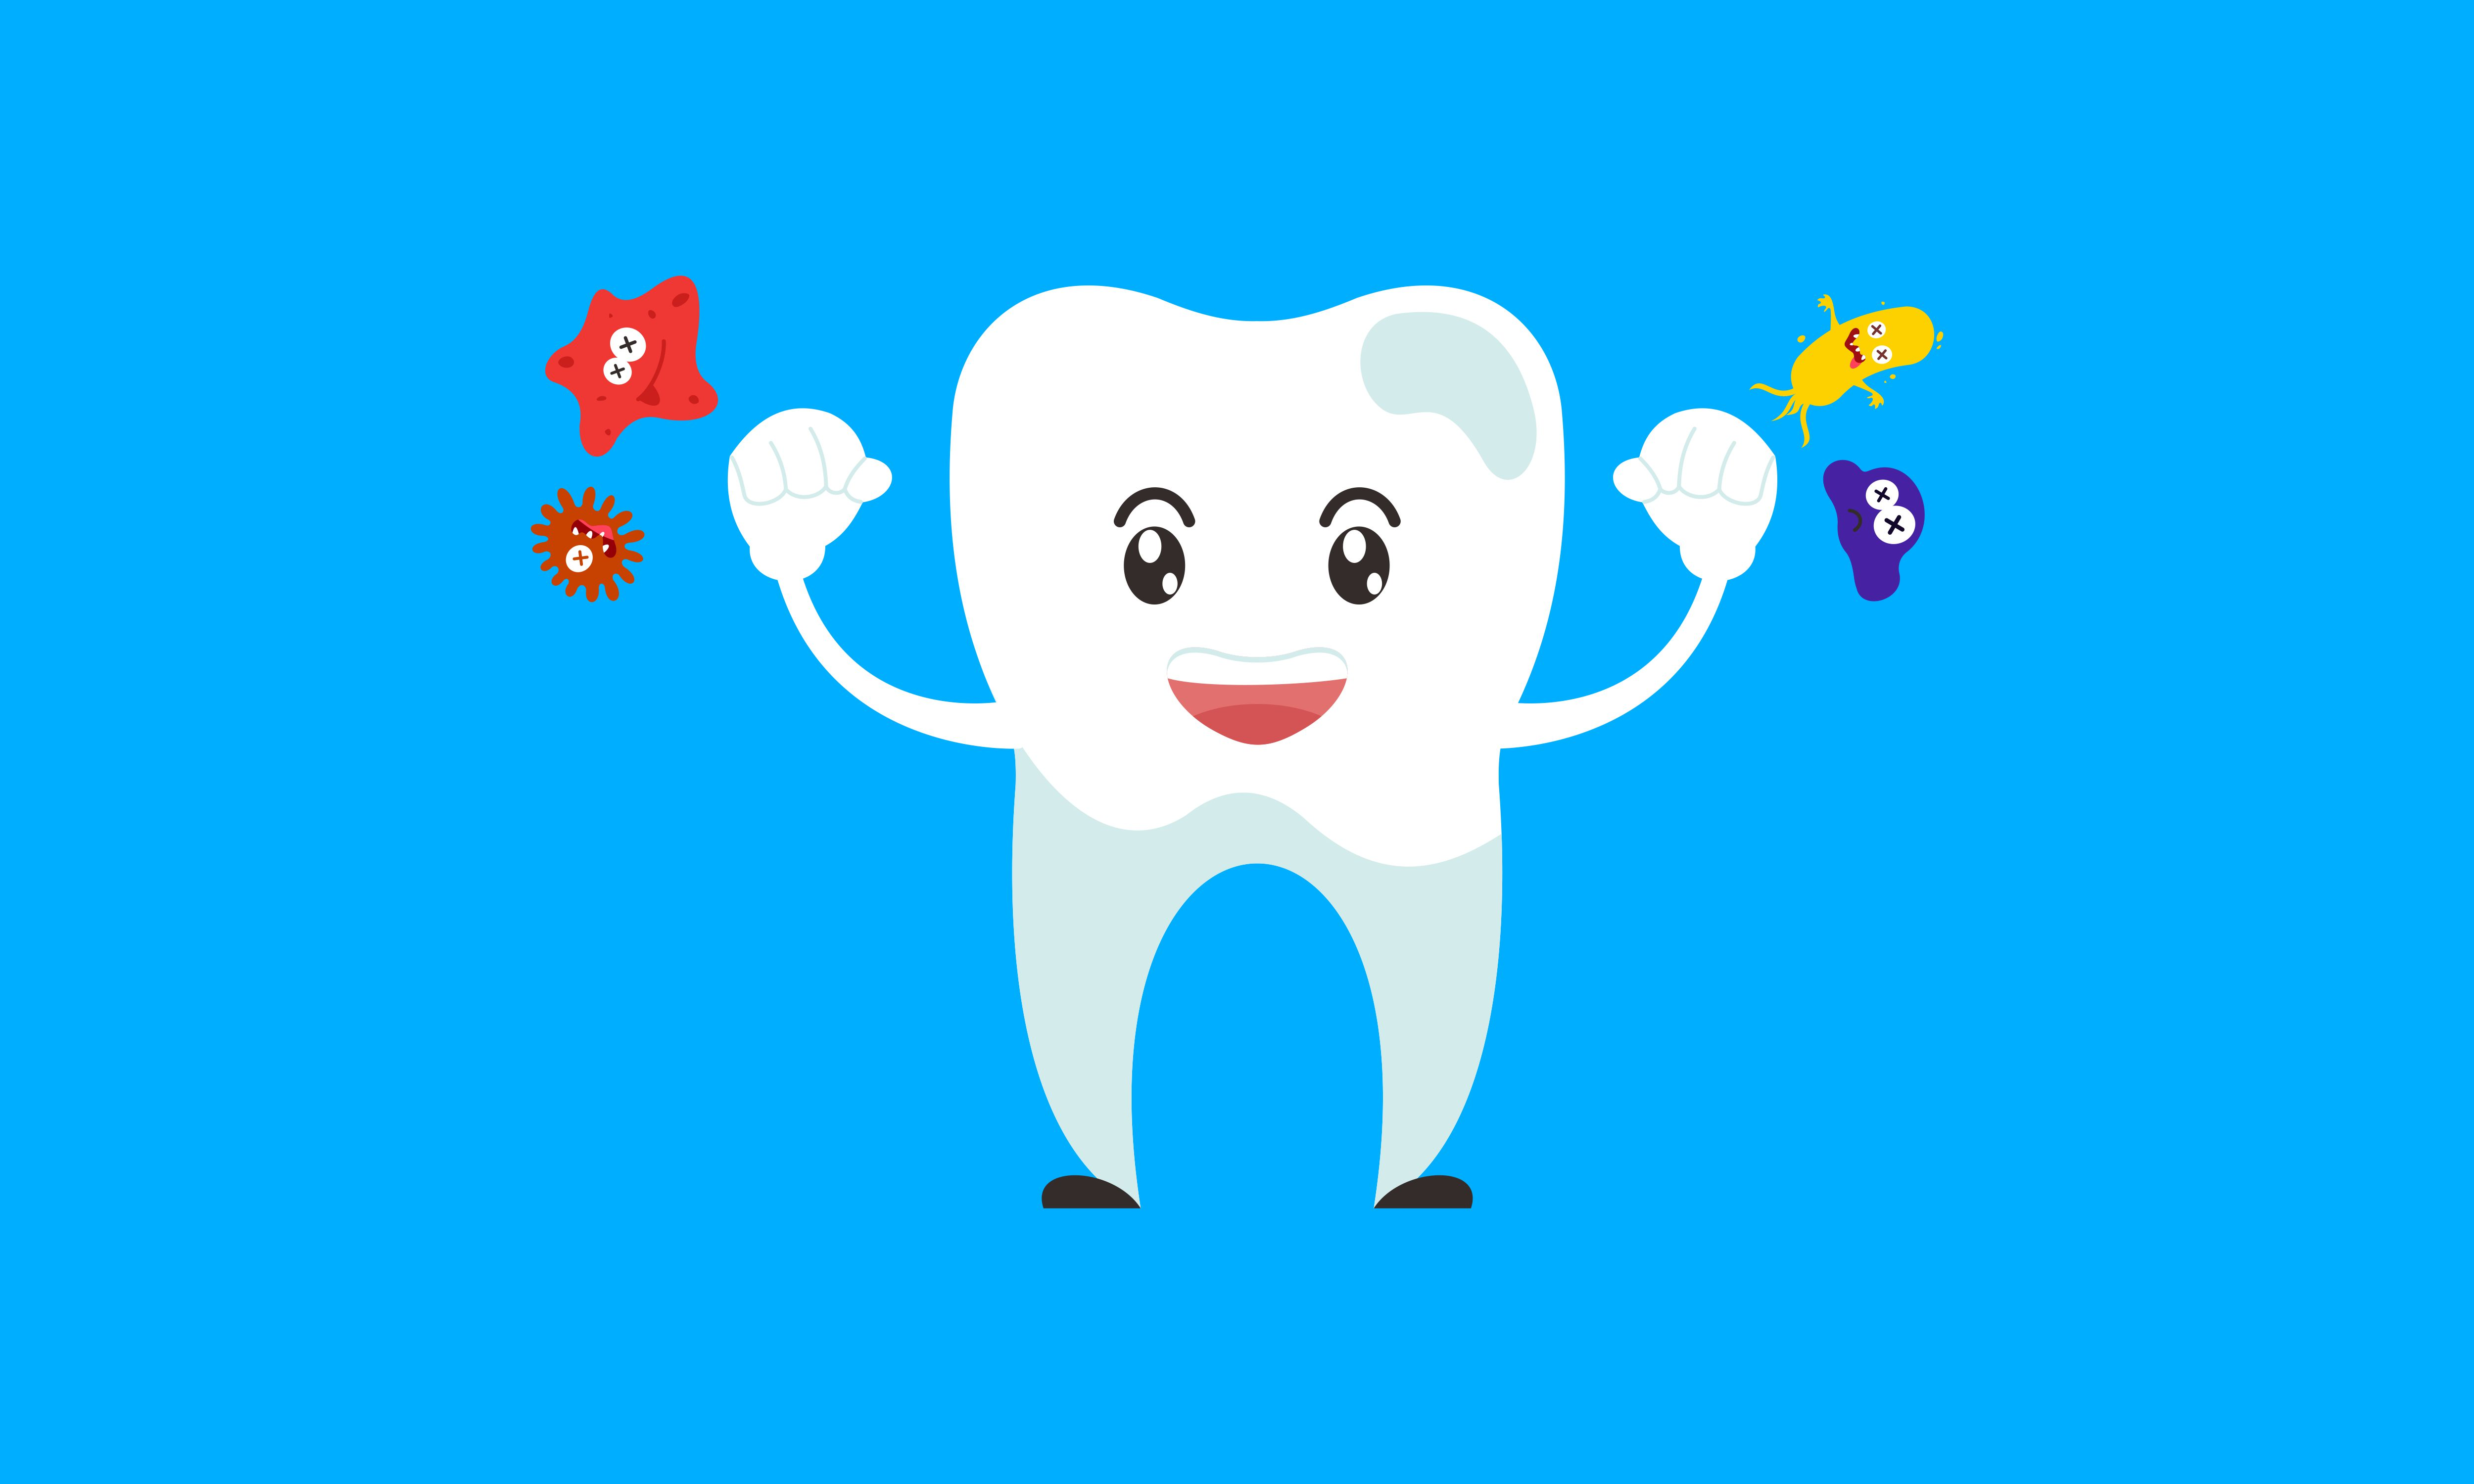 Download Free Dental Mascot Tooth Mascot Dental Logo Graphic By Deemka Studio for Cricut Explore, Silhouette and other cutting machines.